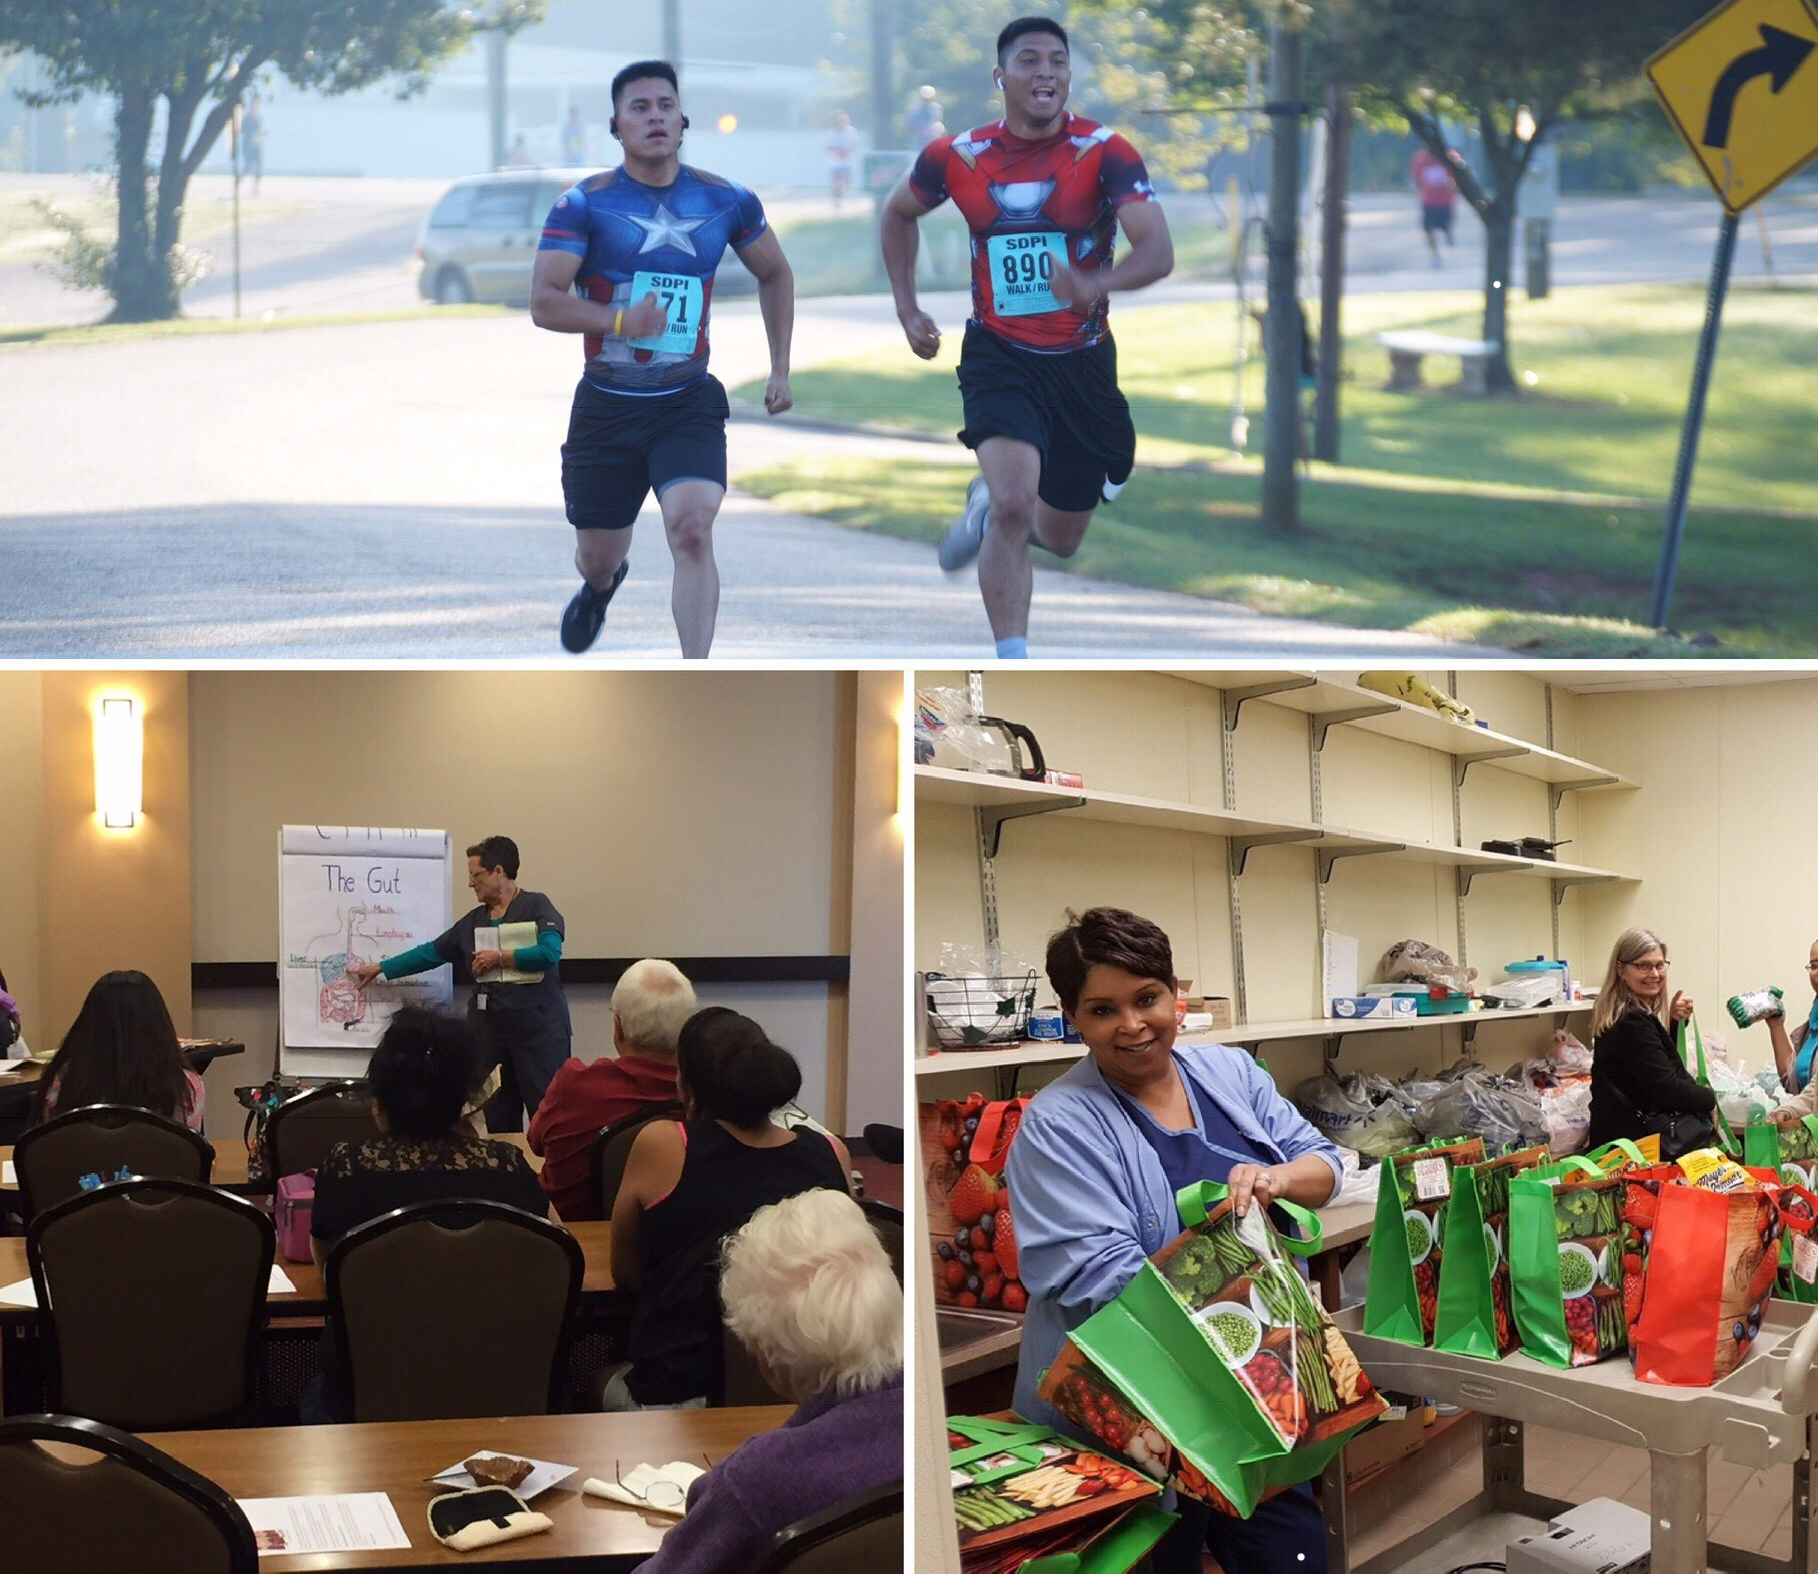 The Special Diabetes Program for Indians has a variety of events throughout Indian Country to encourage healthier activities to prevent diabetes.